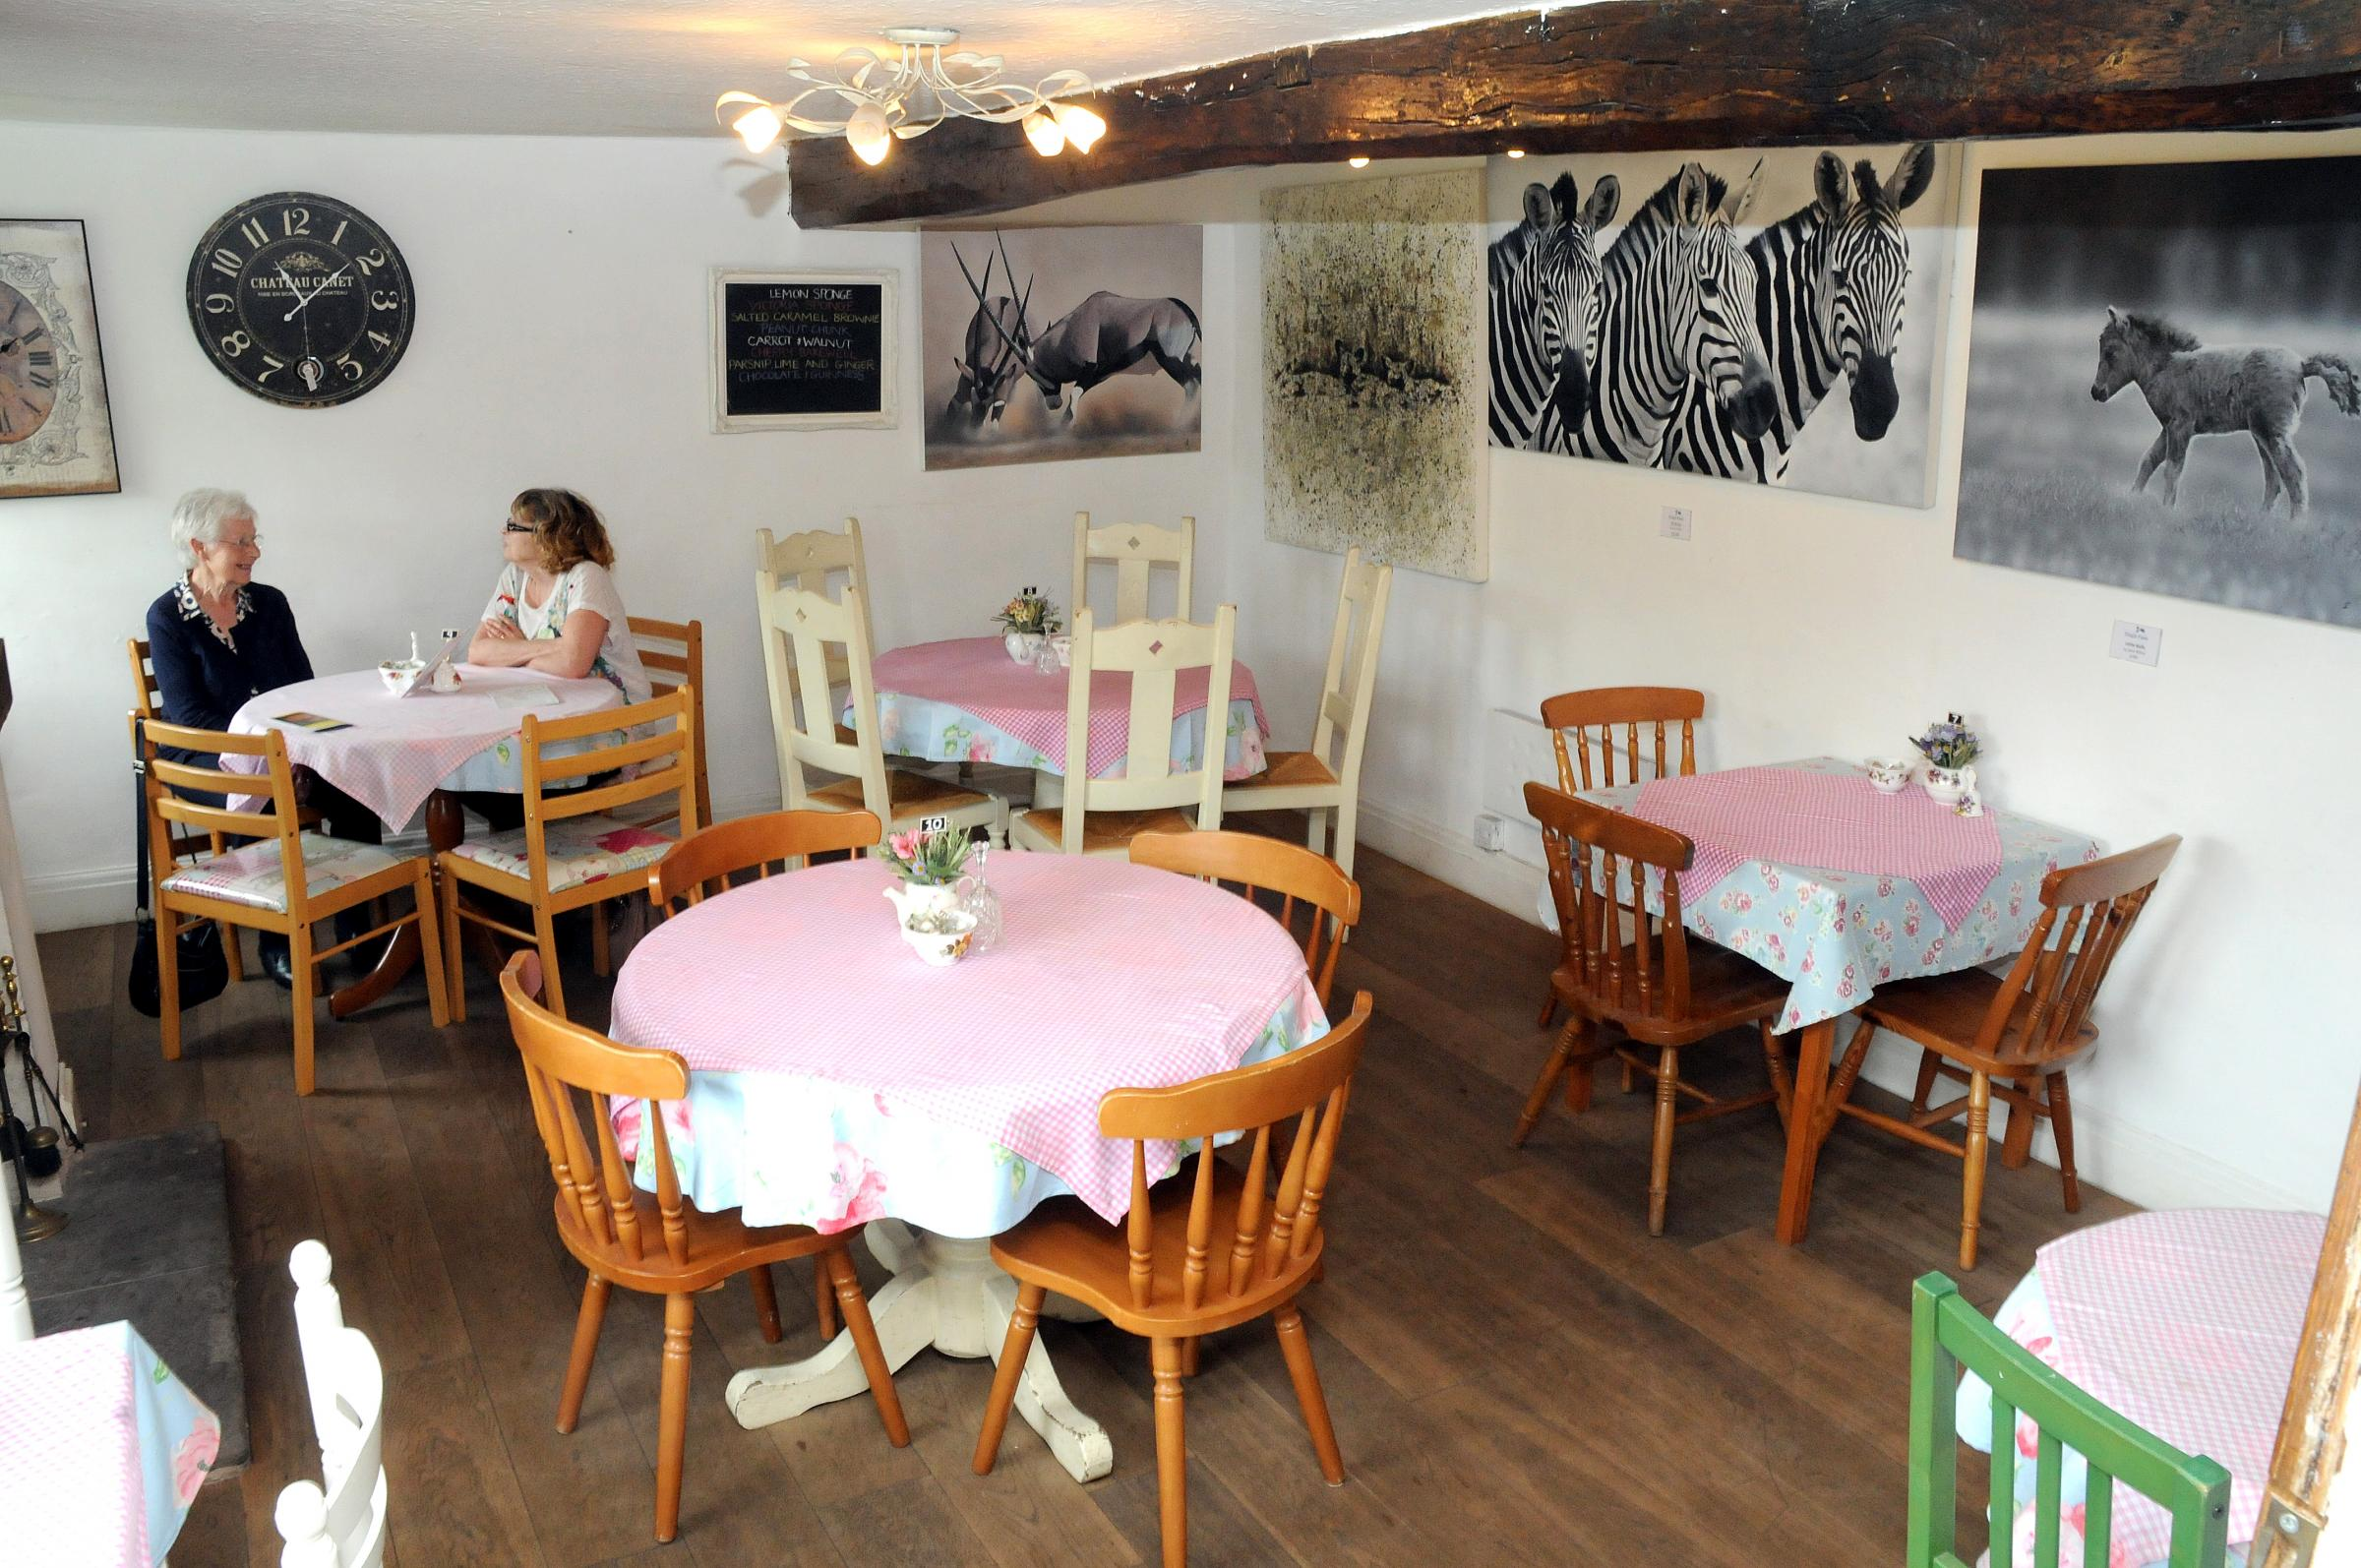 Dingle Farm Tea Room will close permanently at the end of January.